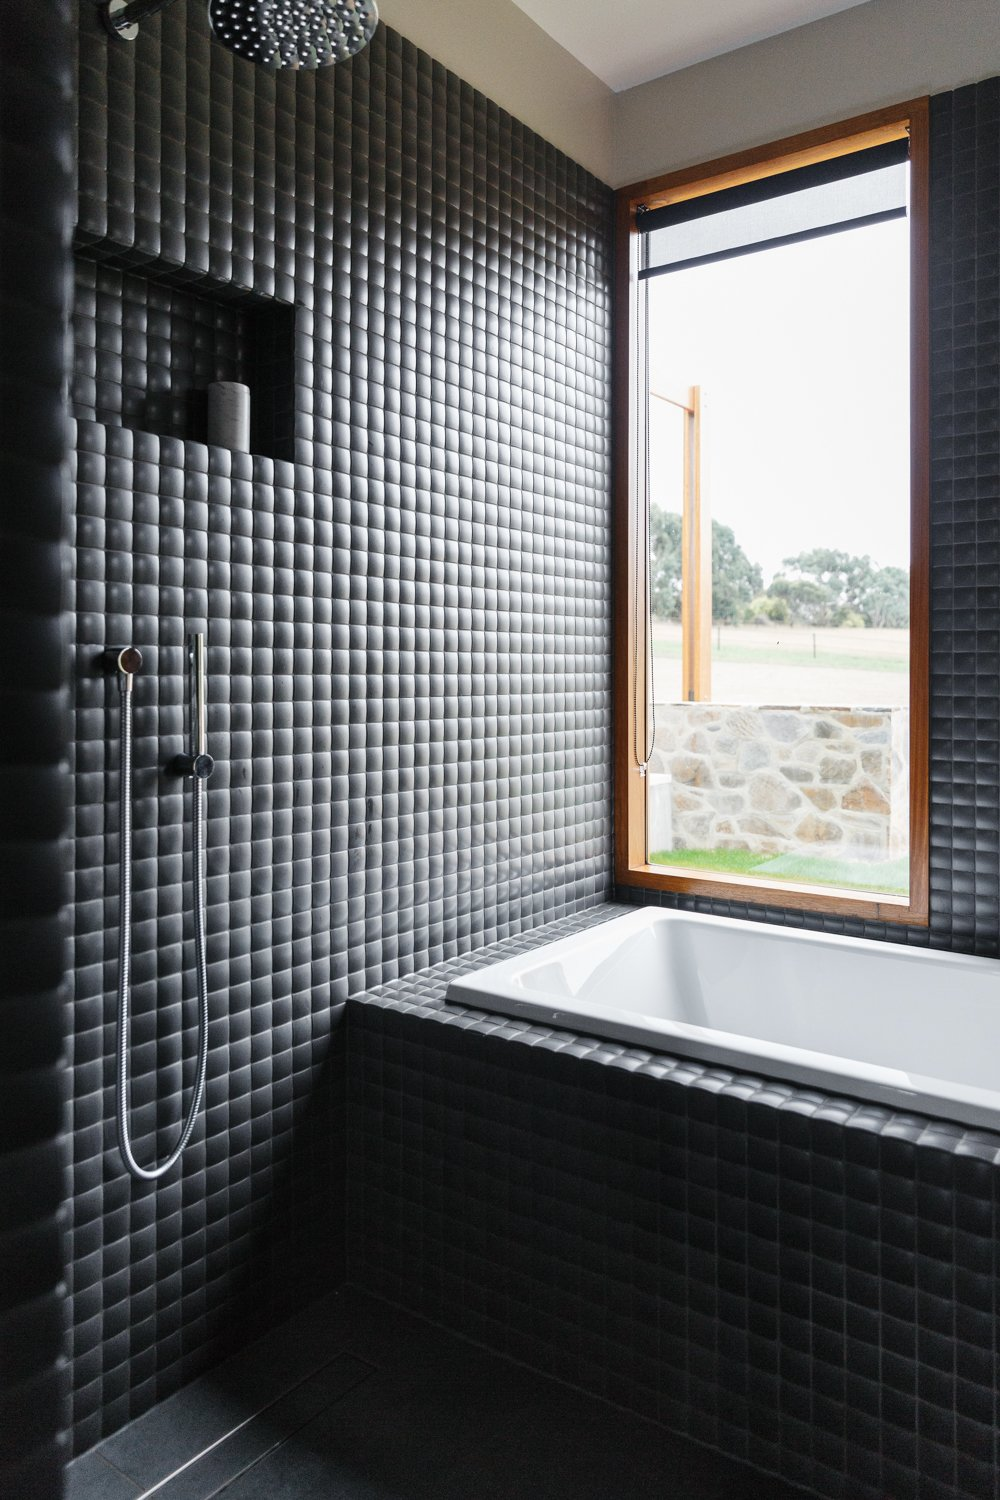 Bath Room, Drop In Tub, Open Shower, and Ceramic Tile Wall  Photo 9 of 11 in The Surrounding Countryside Inspires a Family Home in Australia's Adelaide Hills